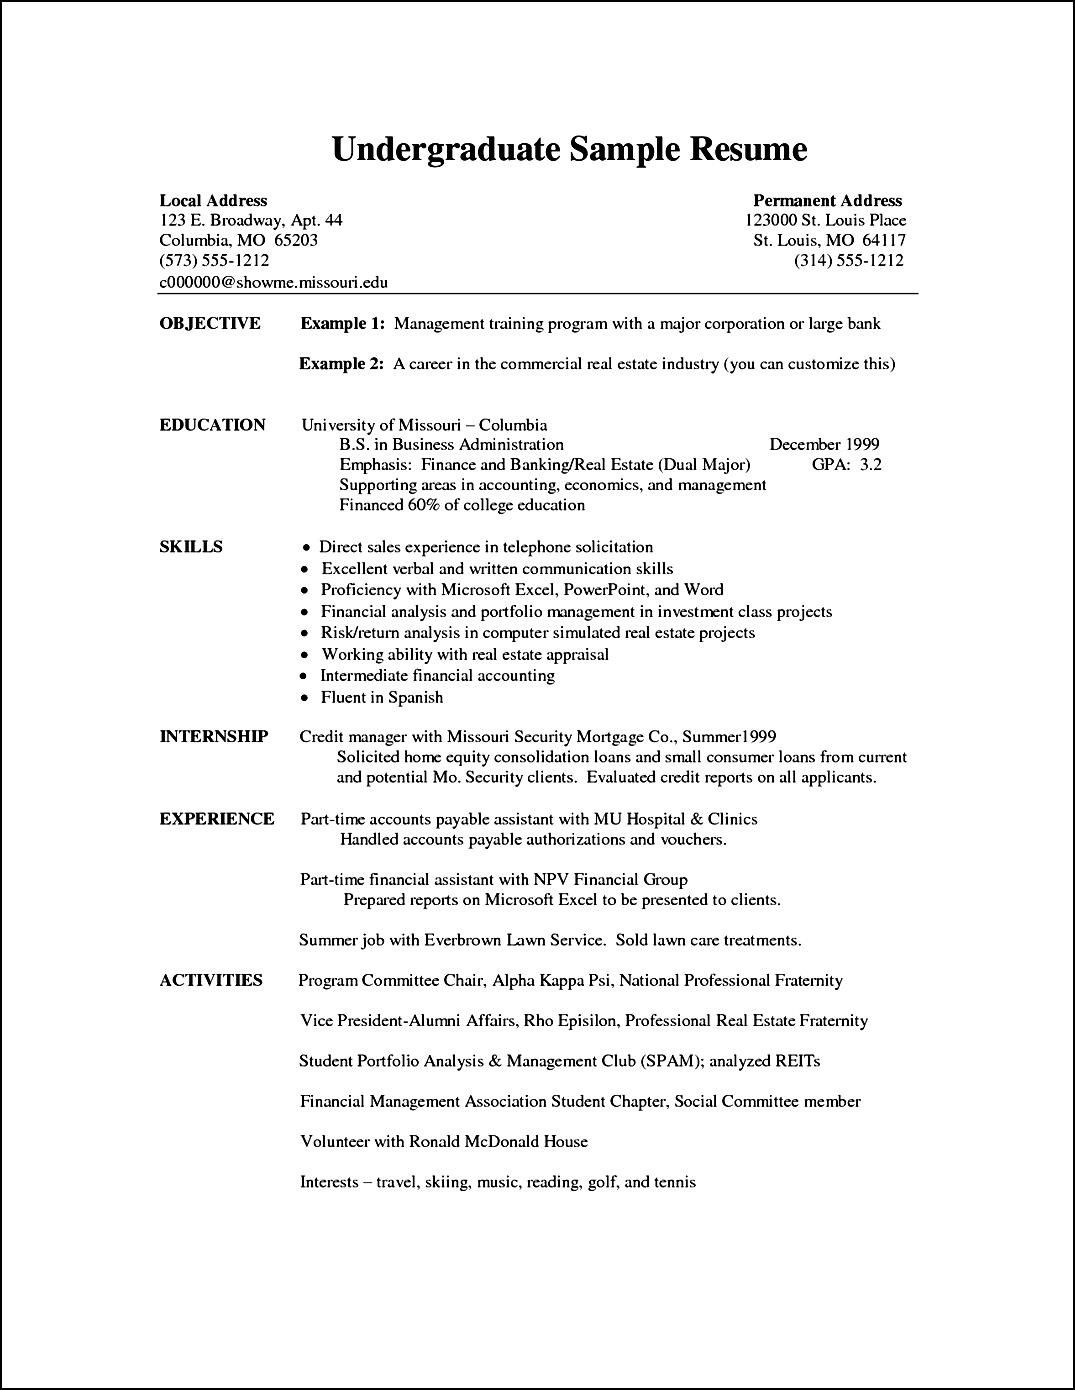 Free Sample Resumes Sample Resume Undergraduate Cover Letter For Vitae  Home Design